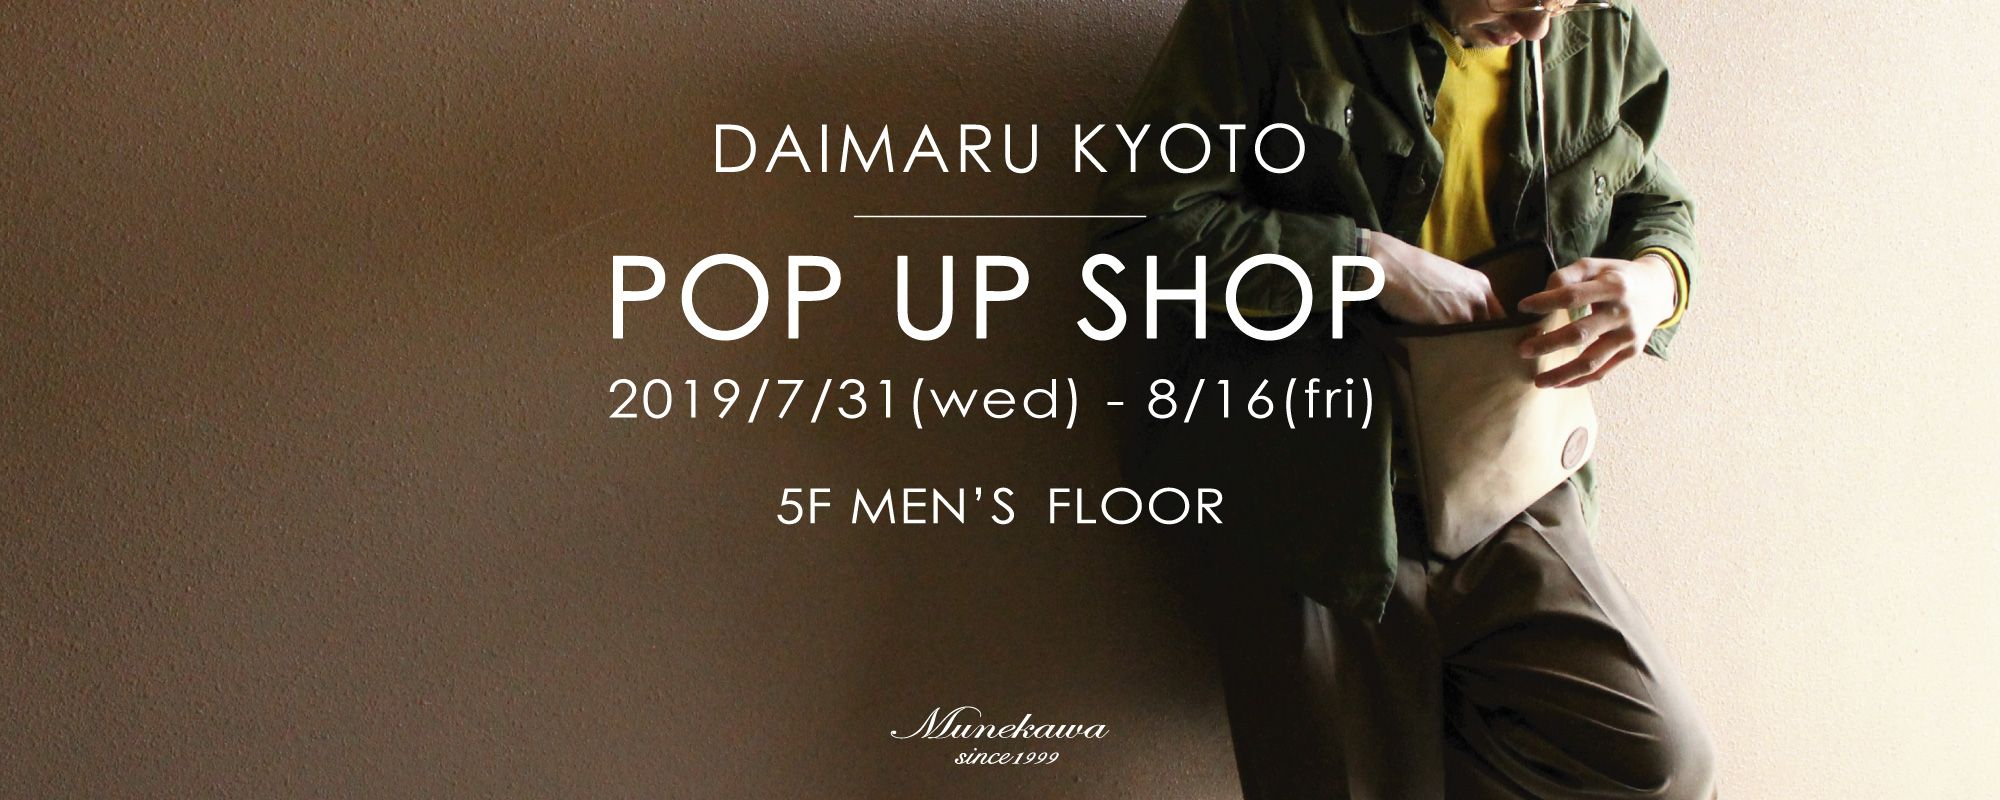 Munekawa POP UP SHOP大丸京都店